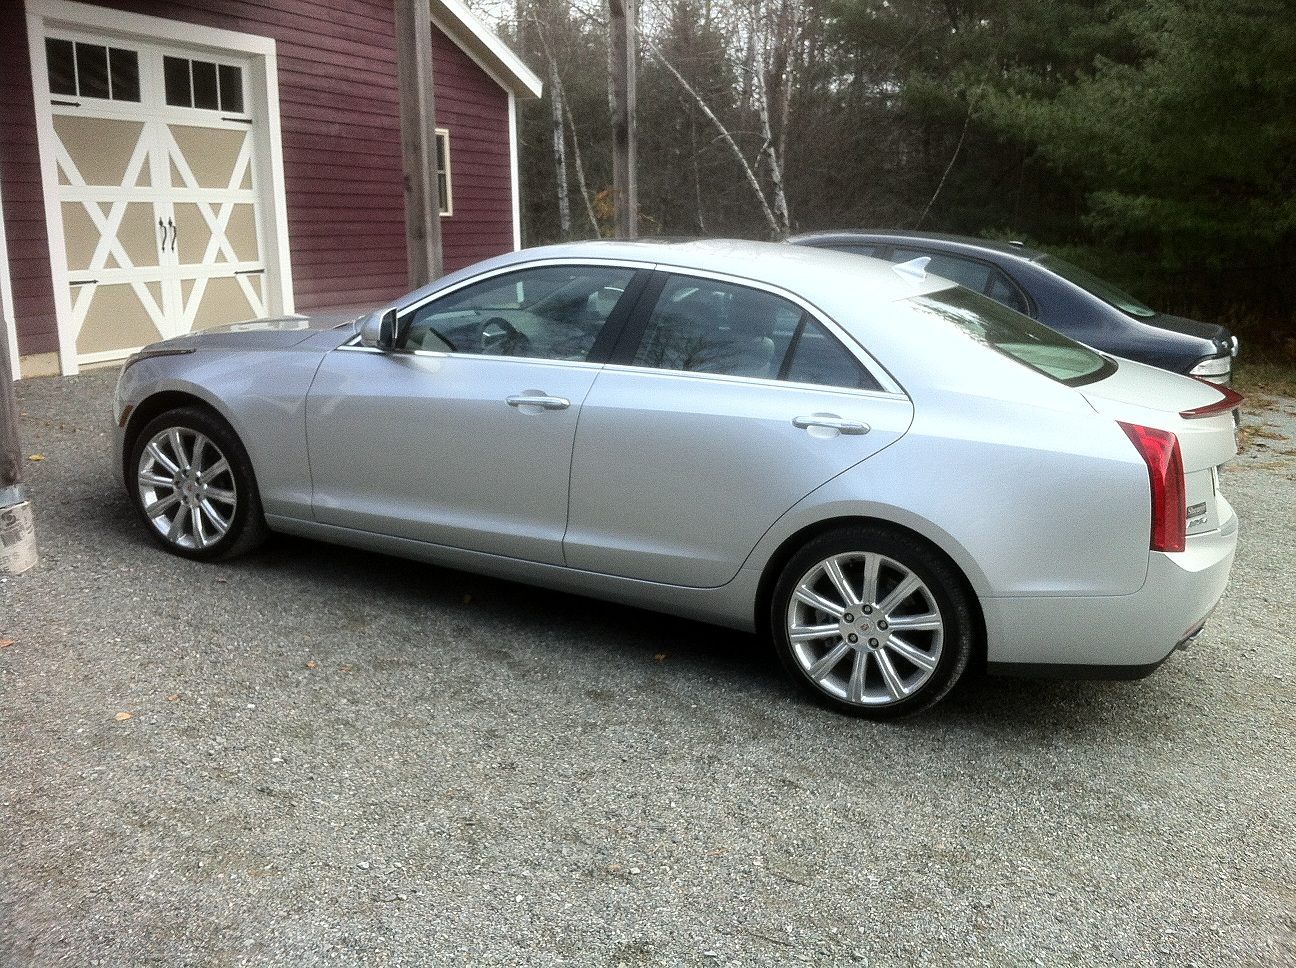 Metallic Silver 2013 Cadillac ATS 2.0T AWD Automatic